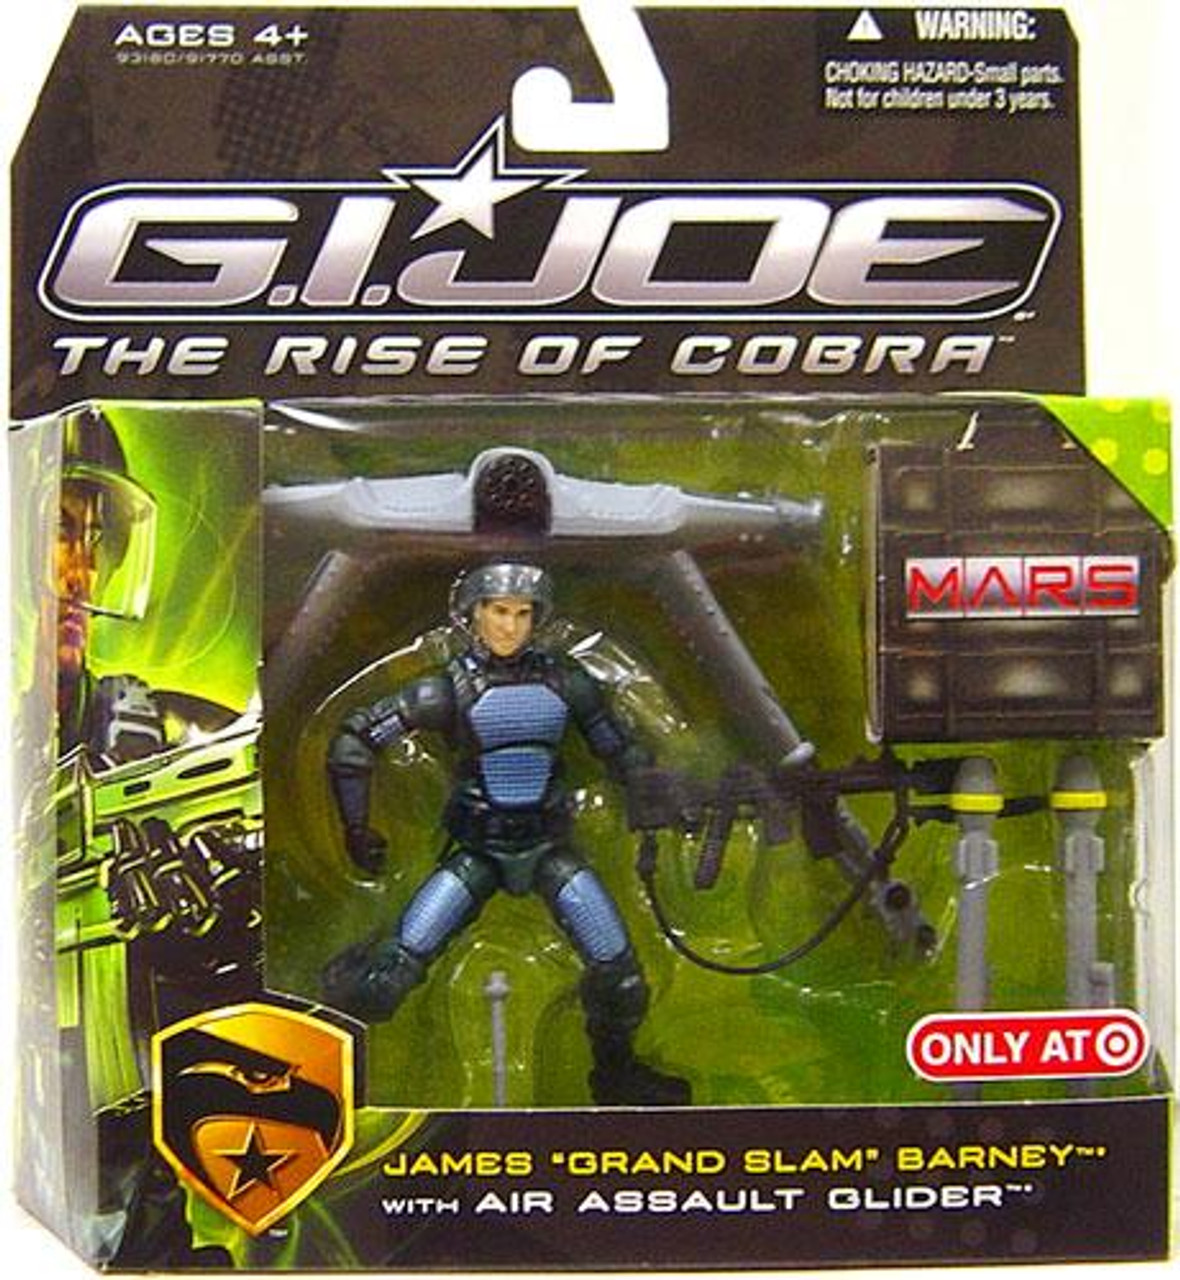 "GI Joe The Rise of Cobra MARS Troopers James ""Grand Slam"" Barney Exclusive Action Figure"